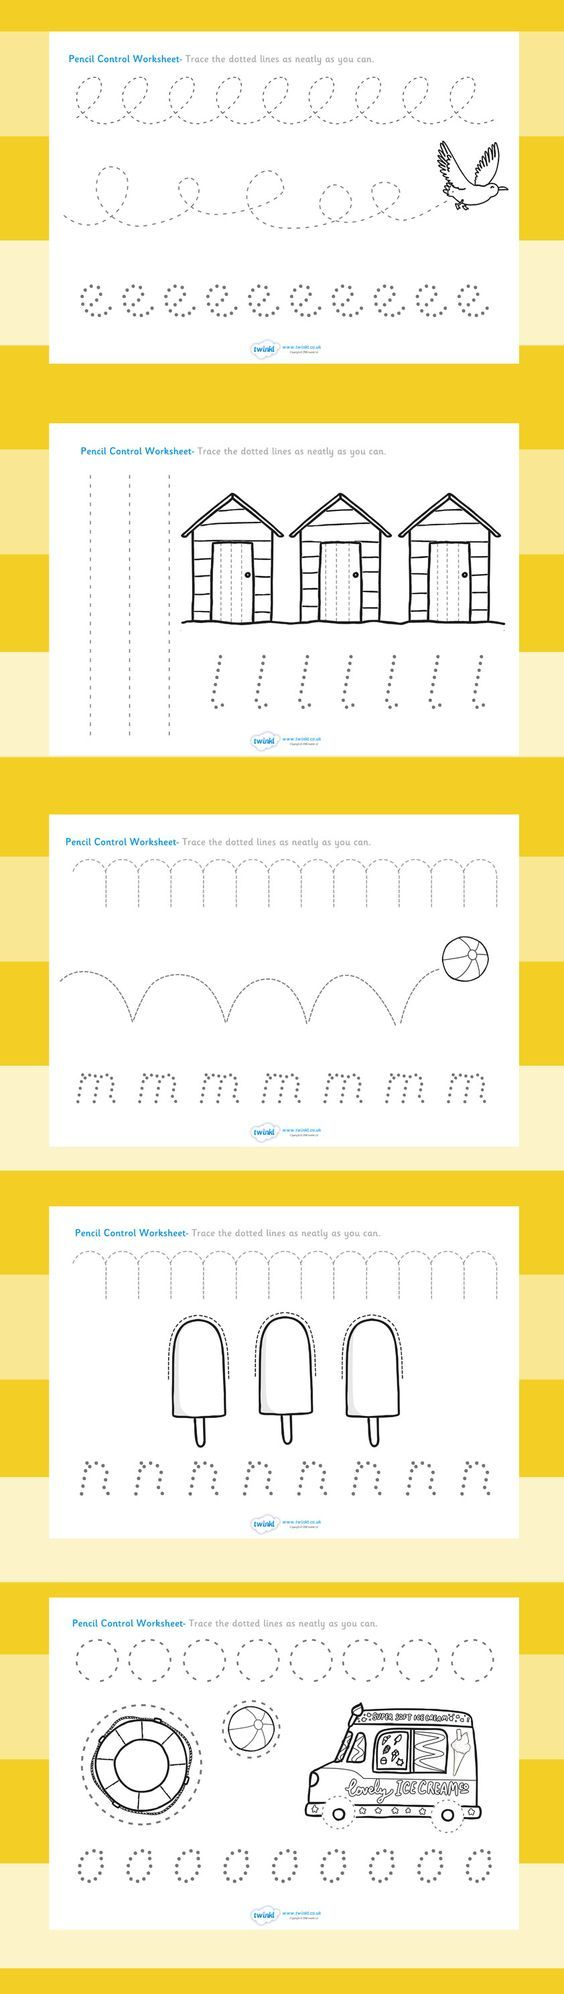 Worksheets Free Make Your Own Handwriting Worksheets best 25 handwriting worksheets ideas on pinterest free line preschool freebie printable